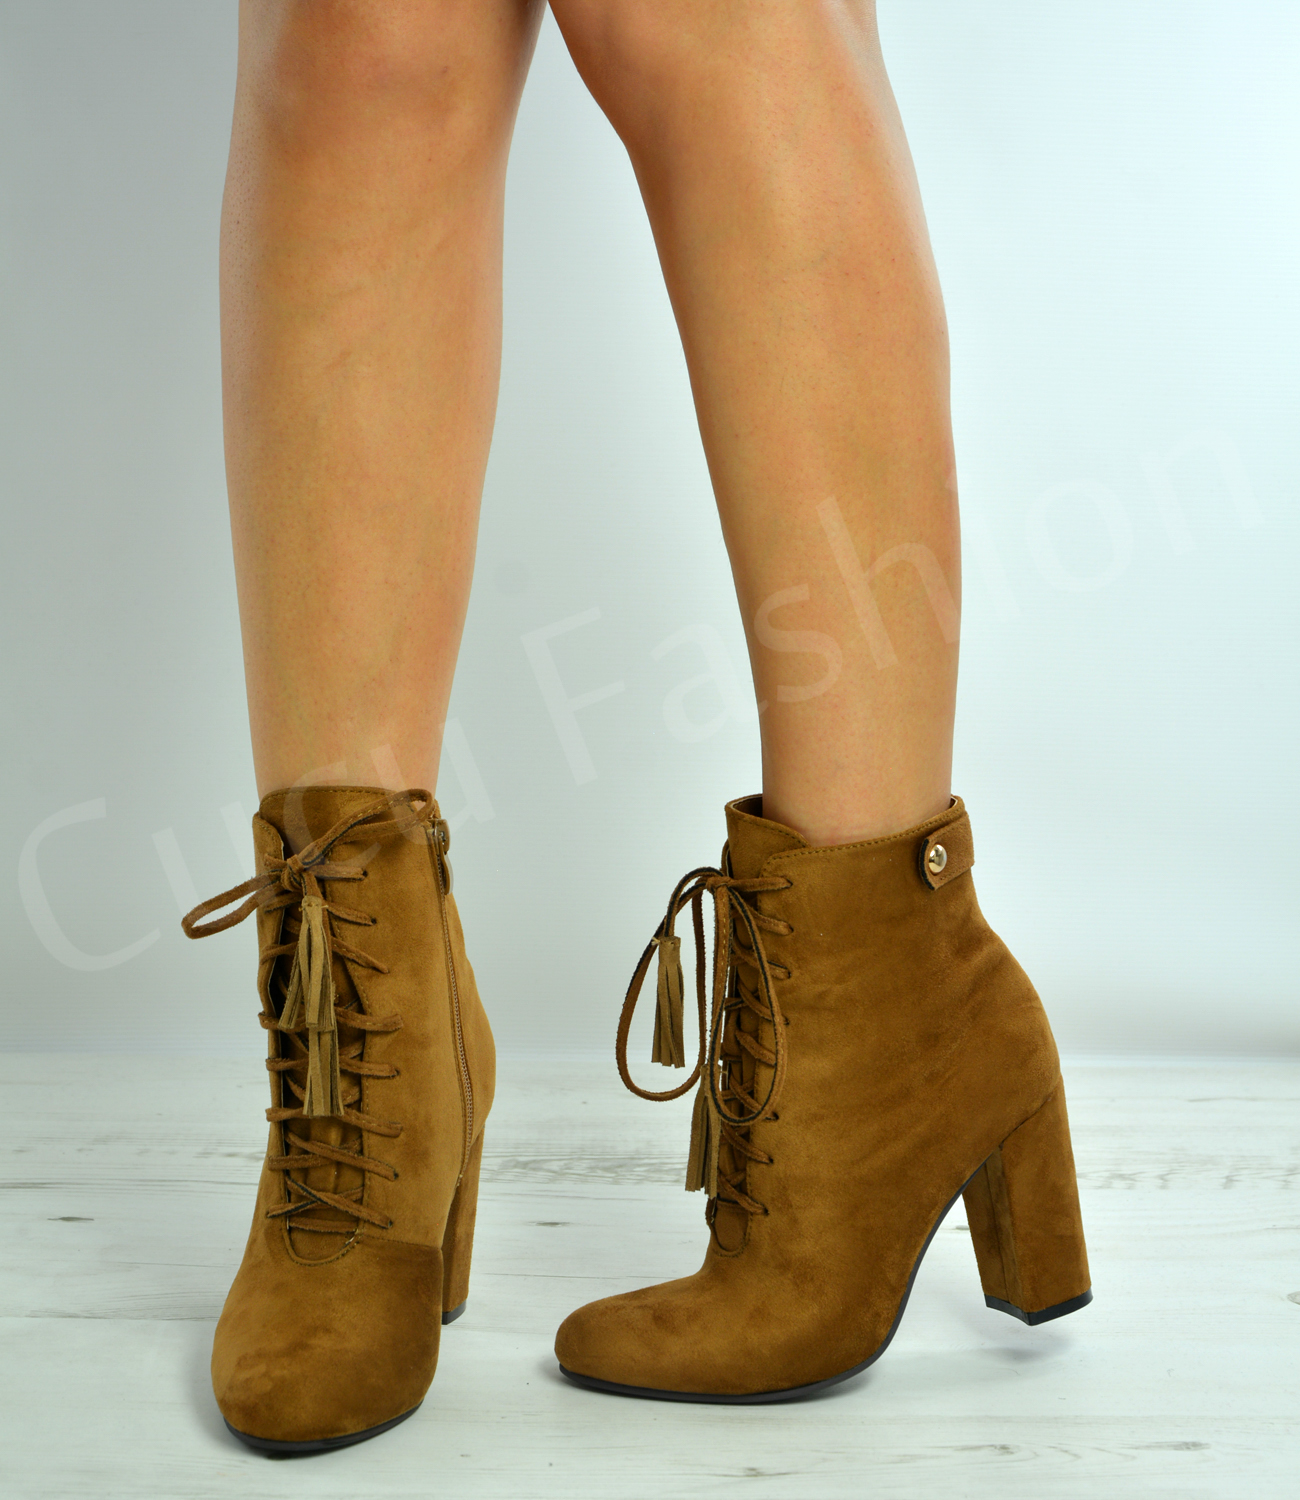 Ankle Shoes Low Heel Uk